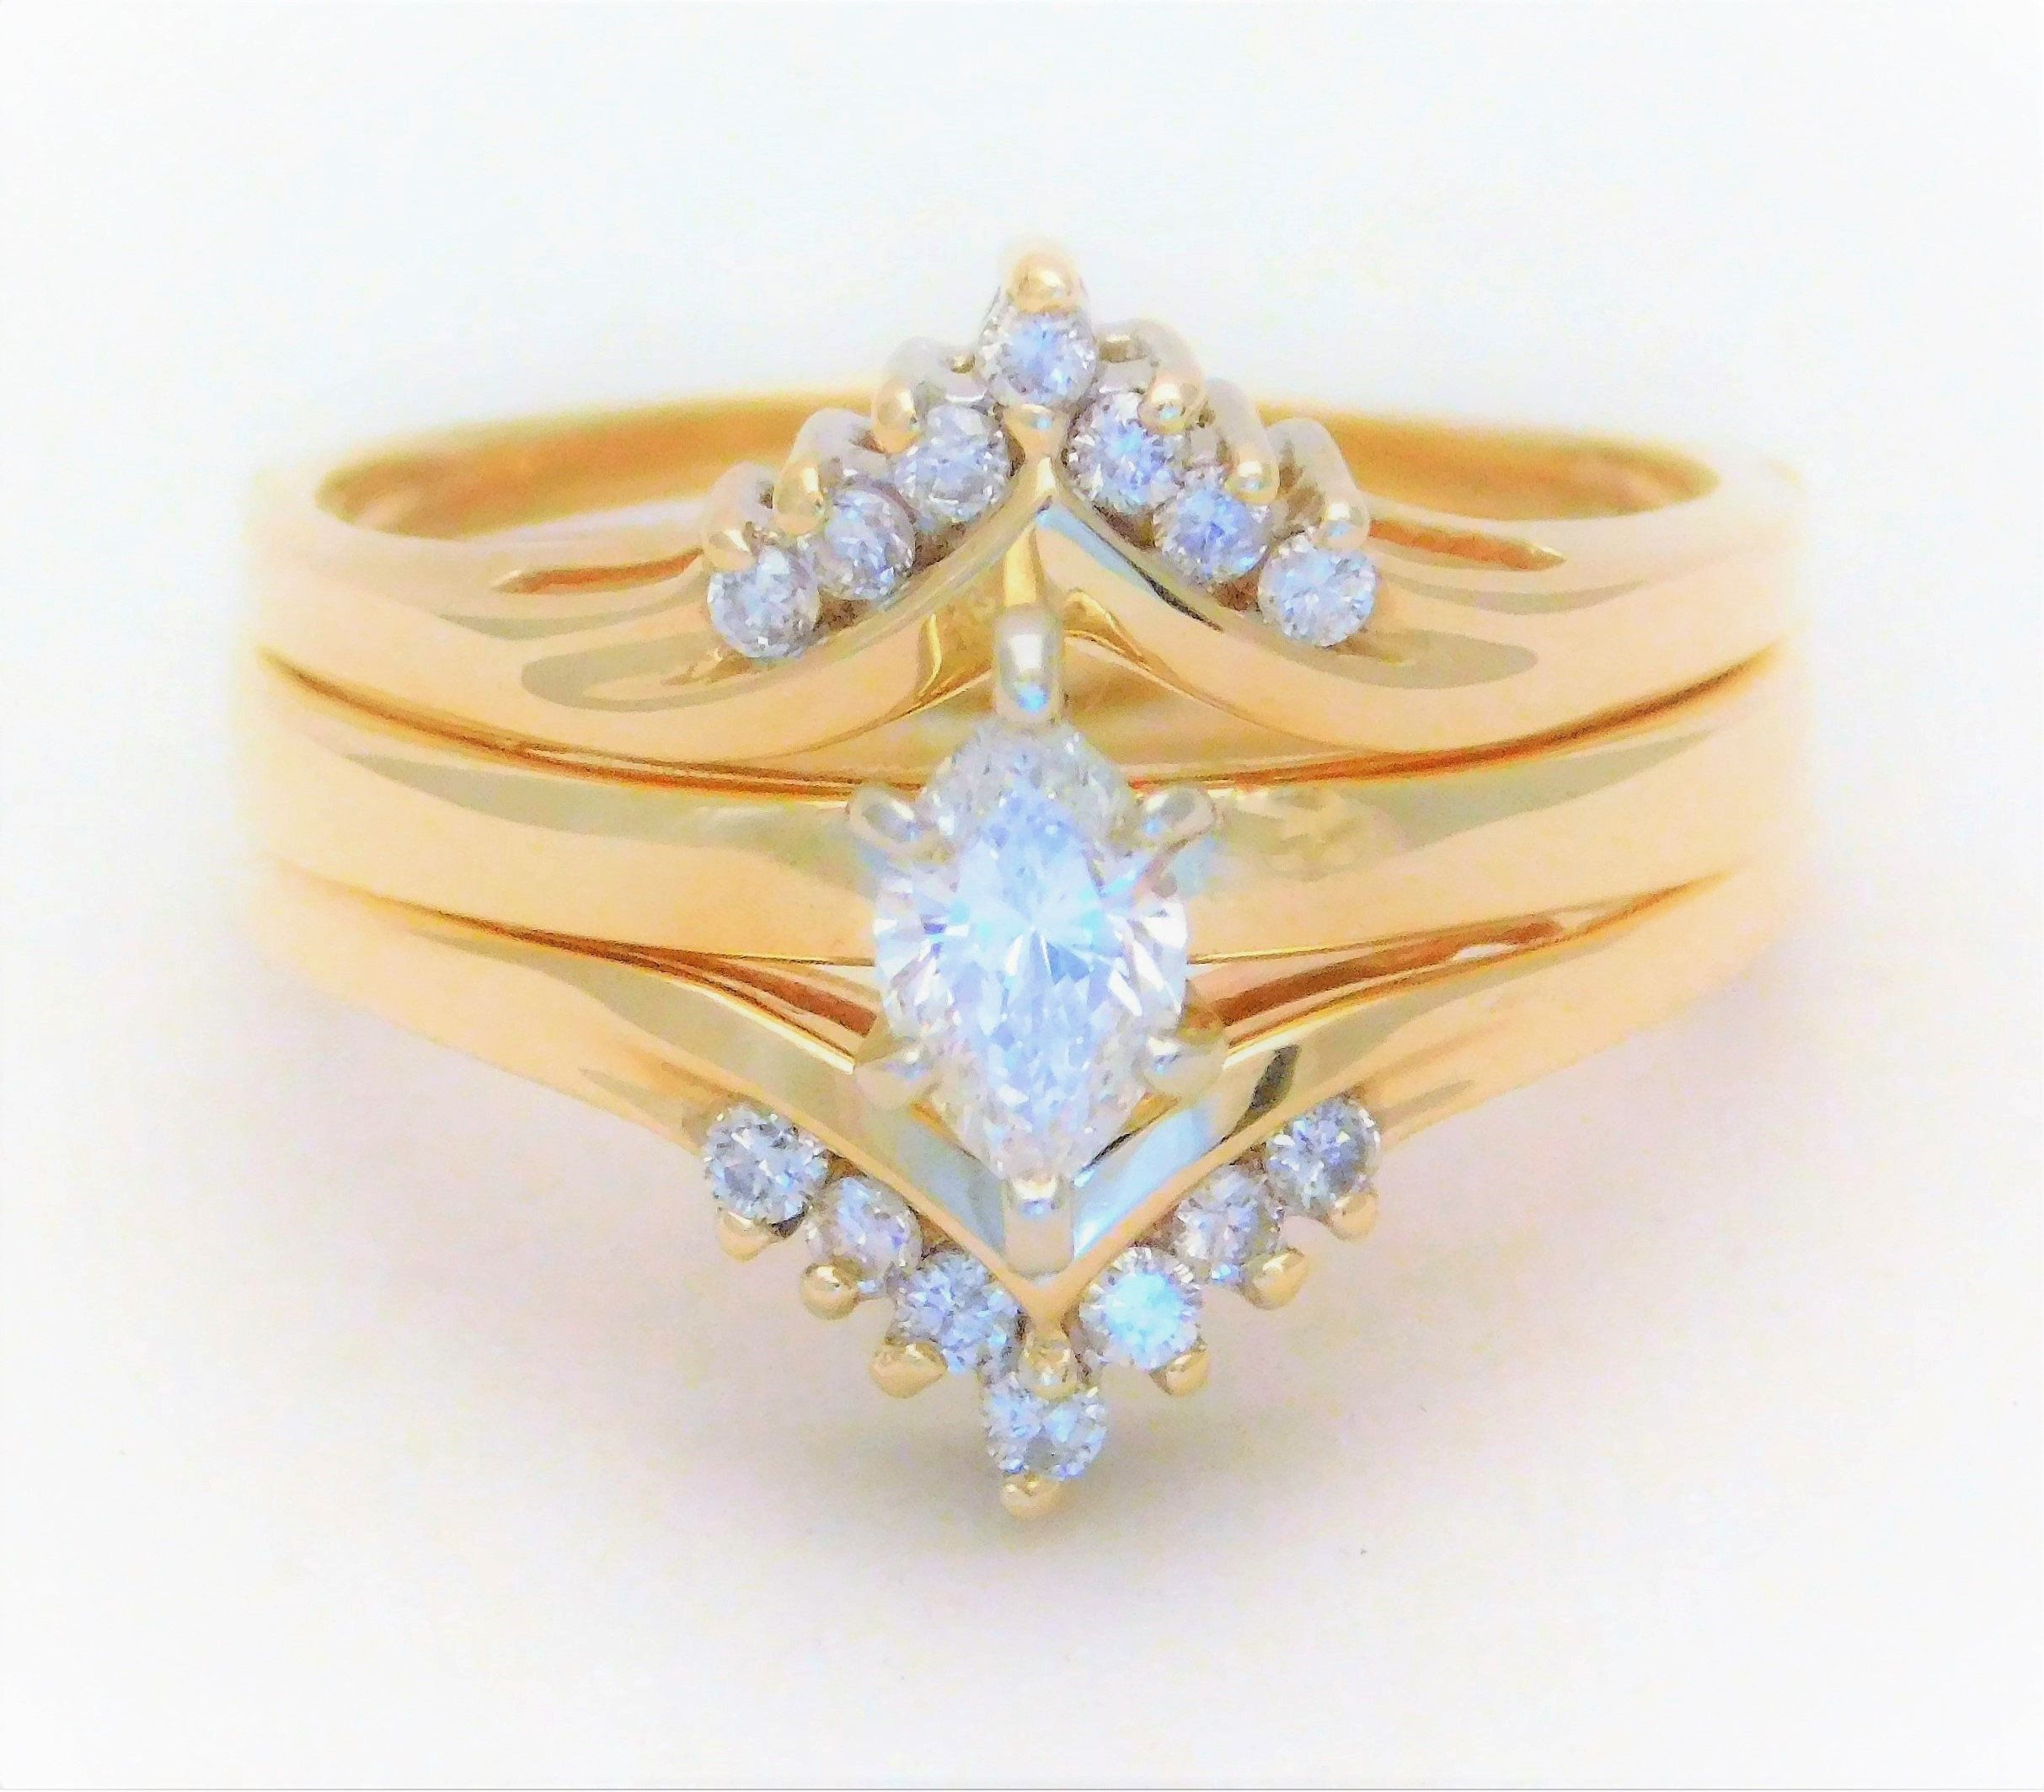 Vintage Marquise Diamond Solitaire Engagement Ring with